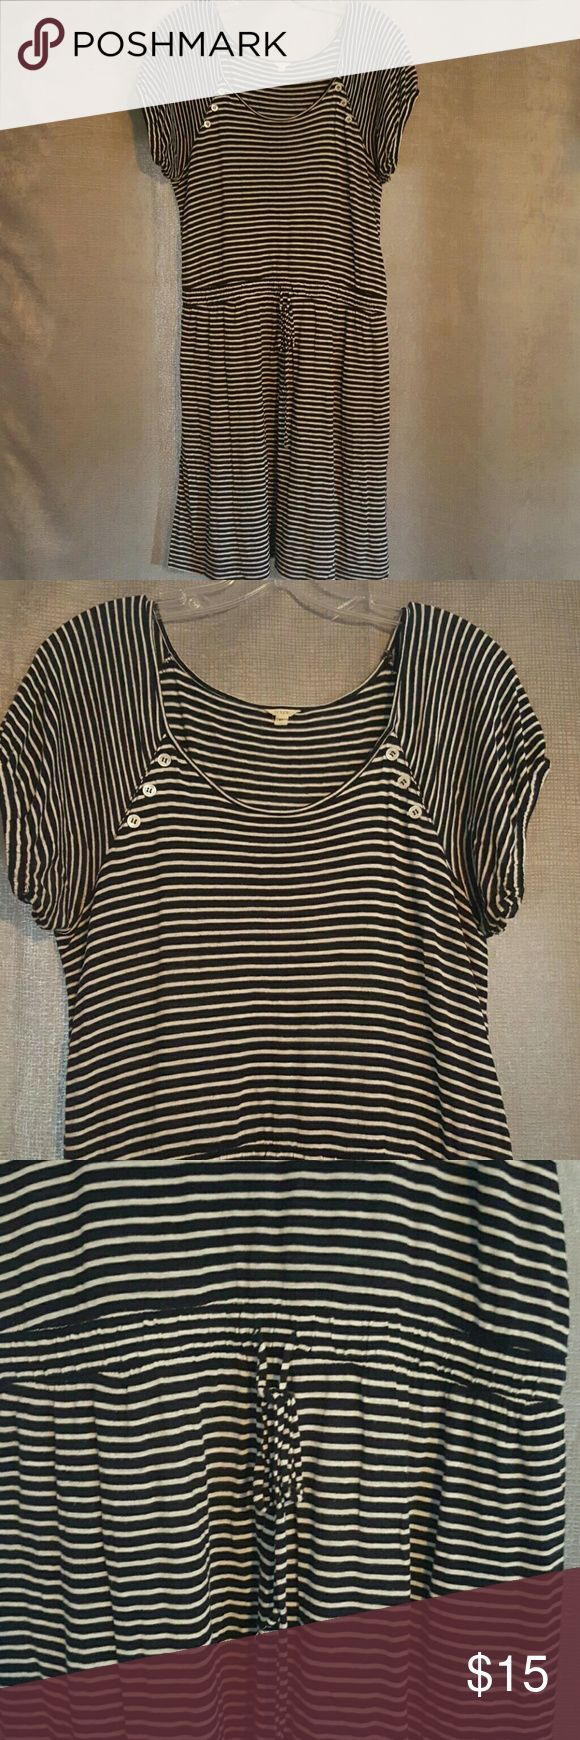 J.Crew nautical cotton dress Nautical cotton dress from Jcrew. Short sleeves which have elastic at ends. Waist can be tightened with tie. No damage. J. Crew Dresses